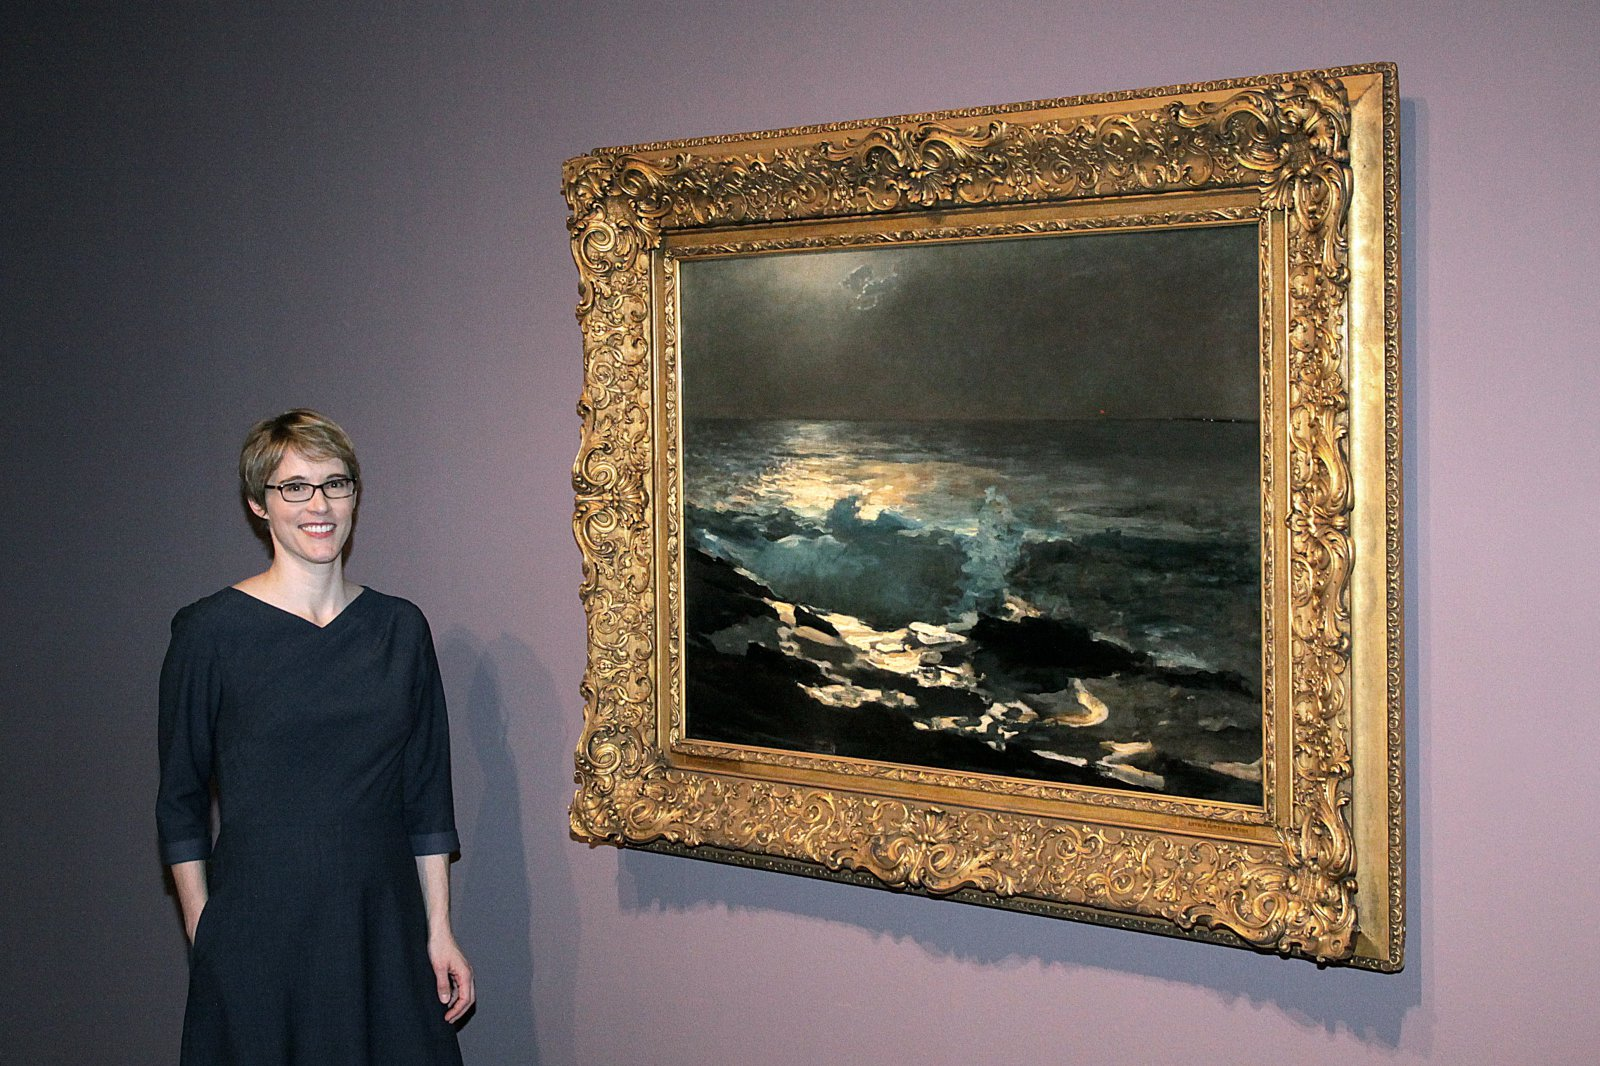 Elizabeth Athens, exhibition co-curator, Worcester Art Museum, presently at the National Gallery of Art